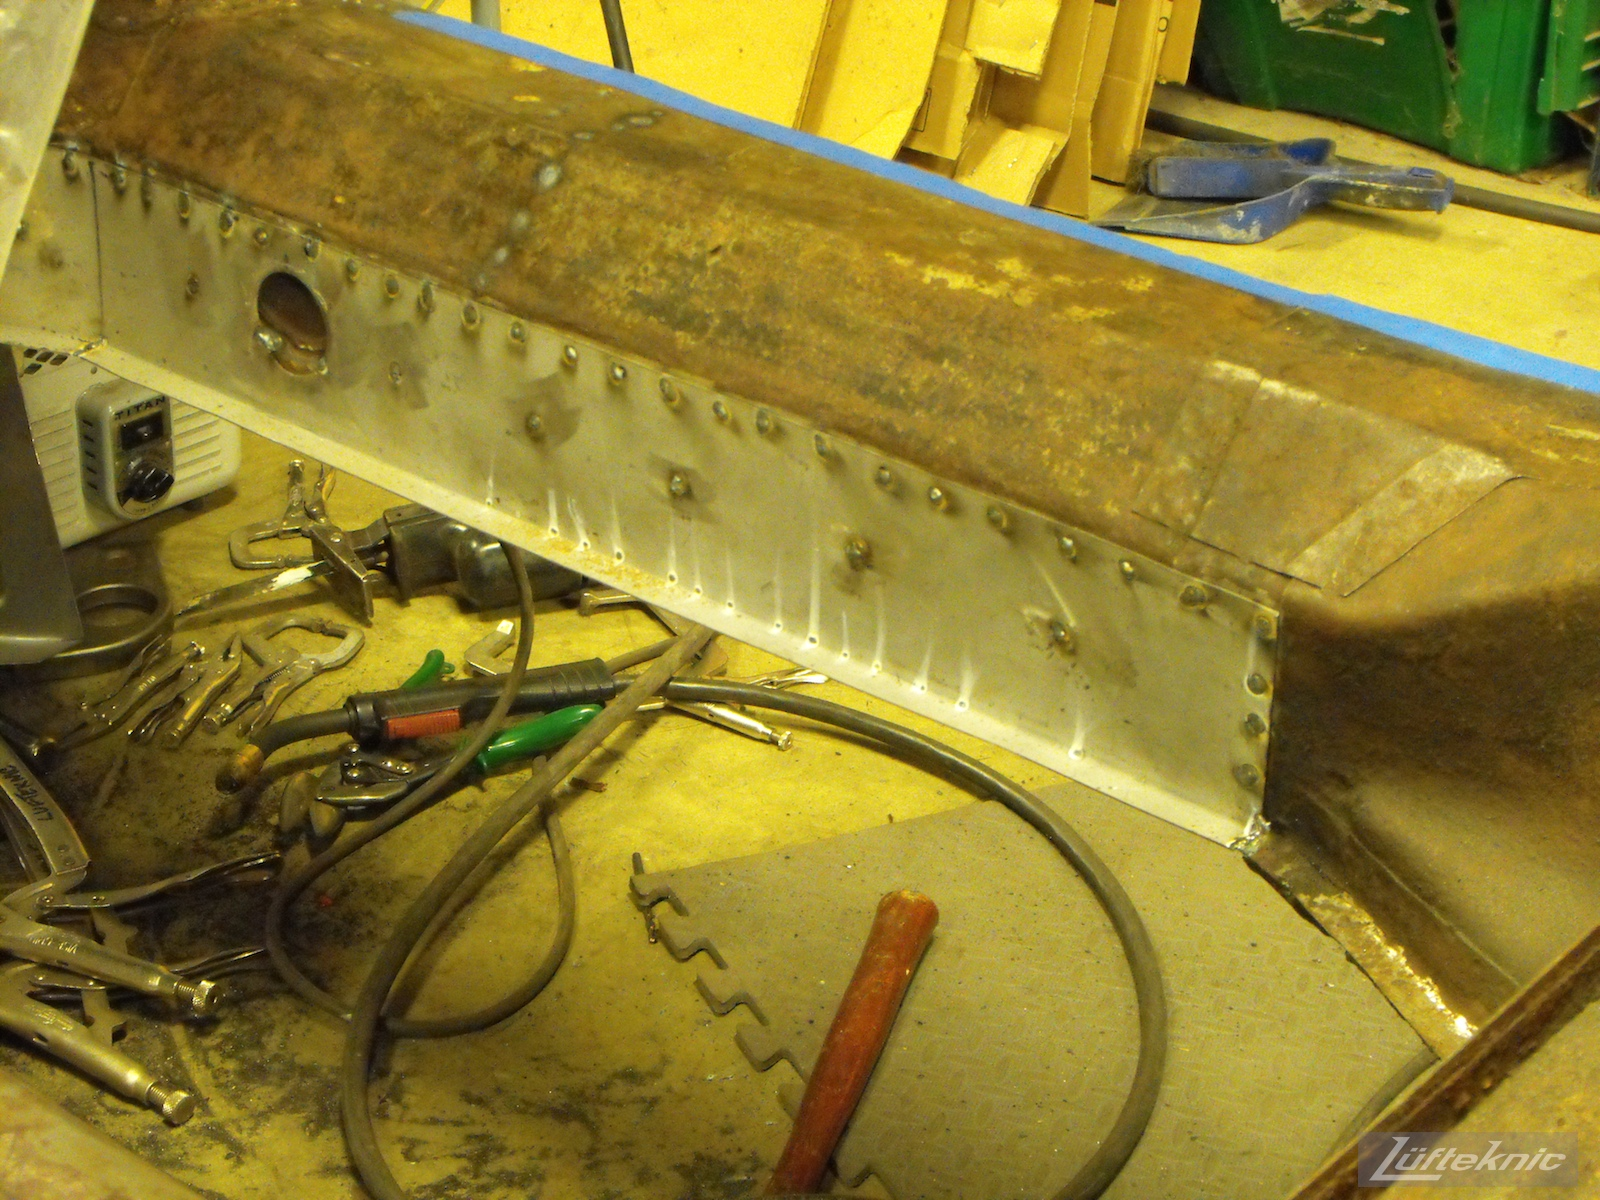 New panel spot welded into the frame on a 1961 Porsche 356B Roadster restoration.